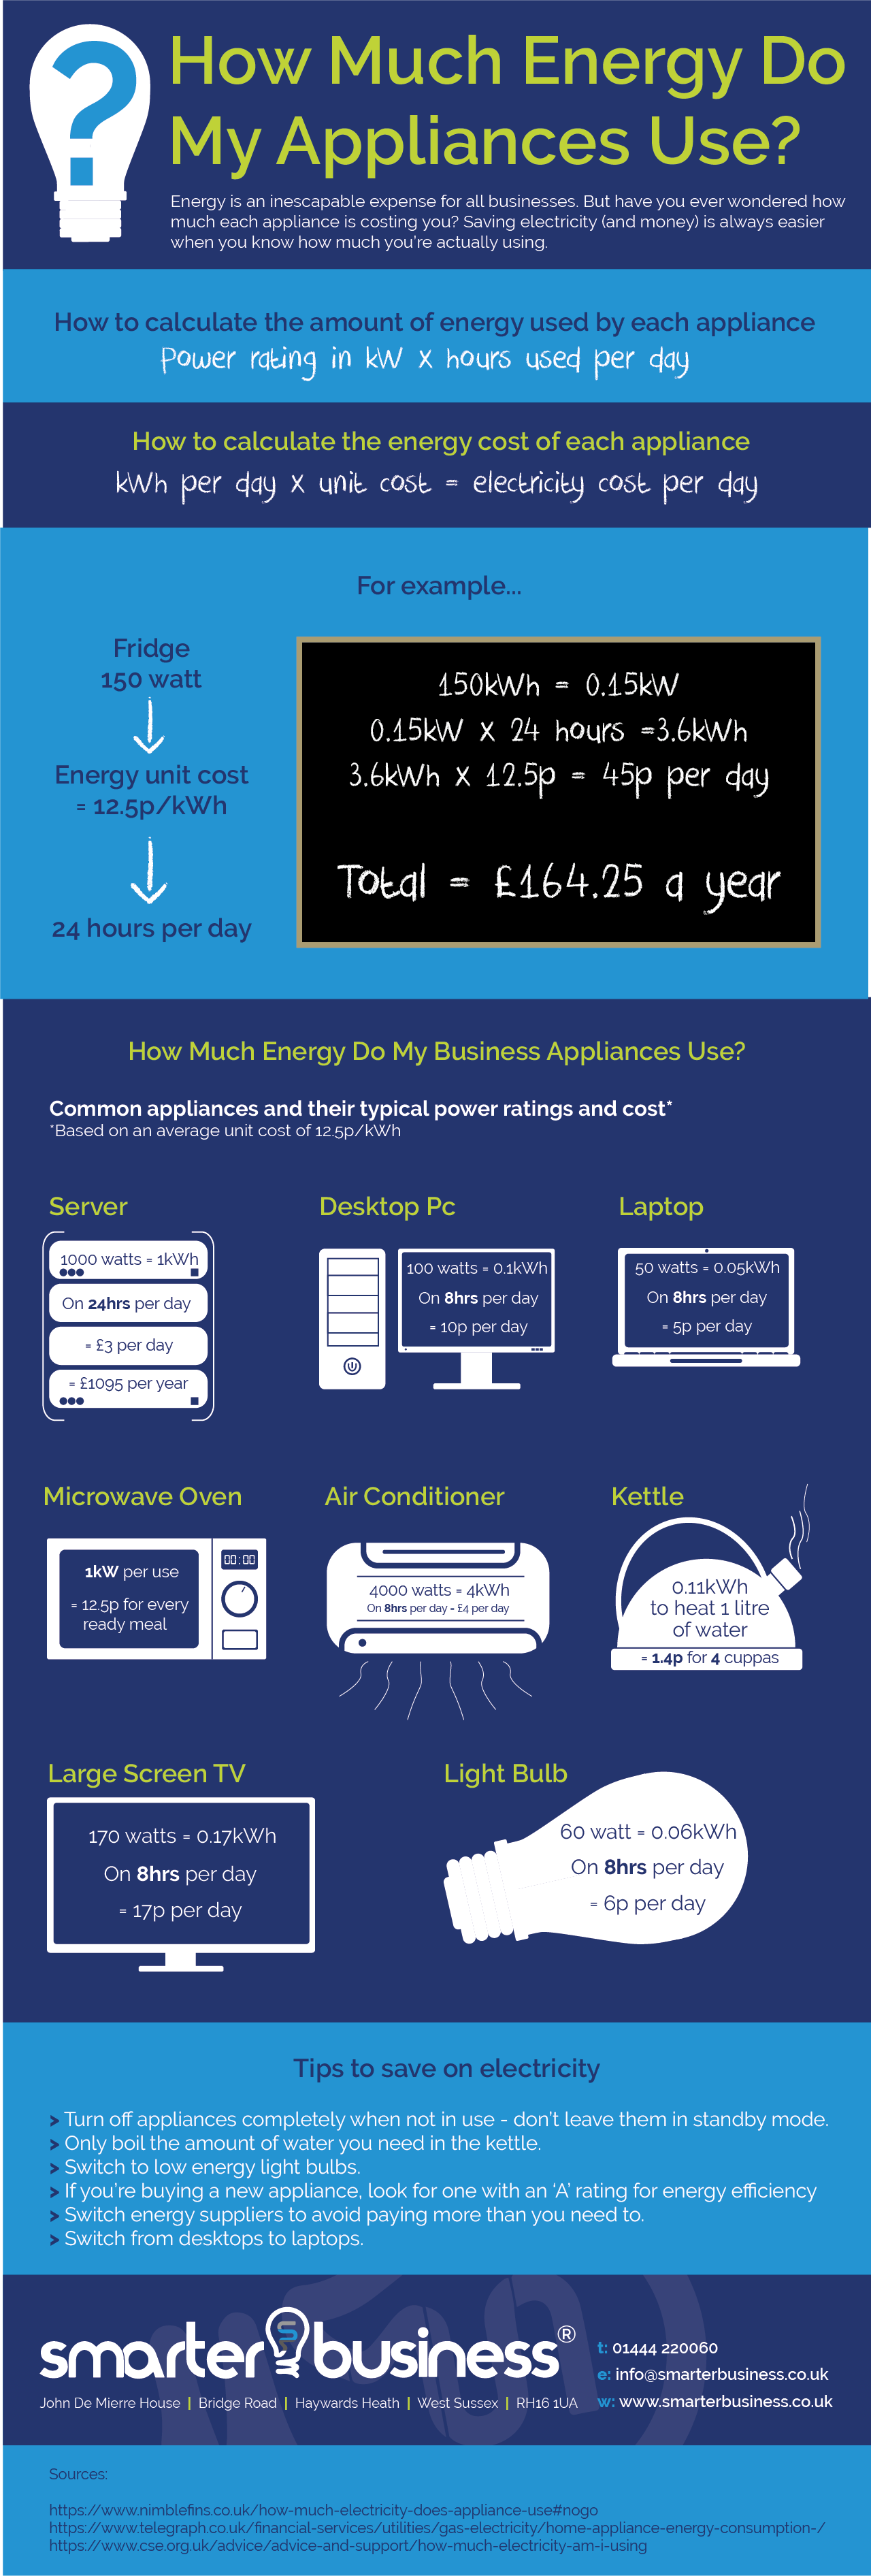 How much energy do my appliances use?